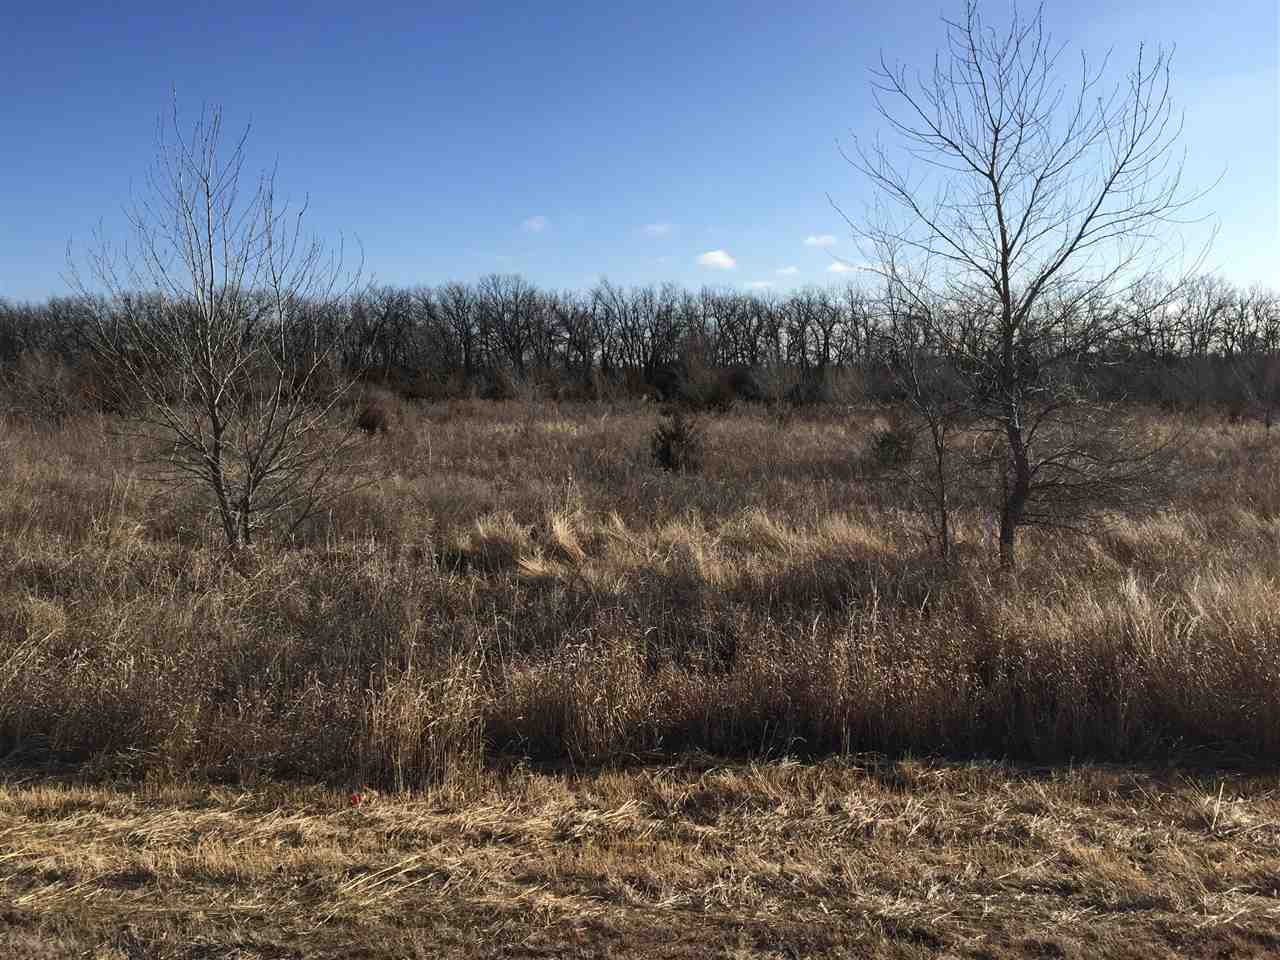 2.2 Acre home site in the prestigious Flint Hills National nationally ranked golf course community.  East facing backyard overlooks common area with lots of trees and privacy.  Minimum main level square footage is 2,500 sq.ft. The front exposure overlooks one of the many stocked ponds in Flint Hills National were there is additional common area.  Gorgeous lot with gorgeous views!